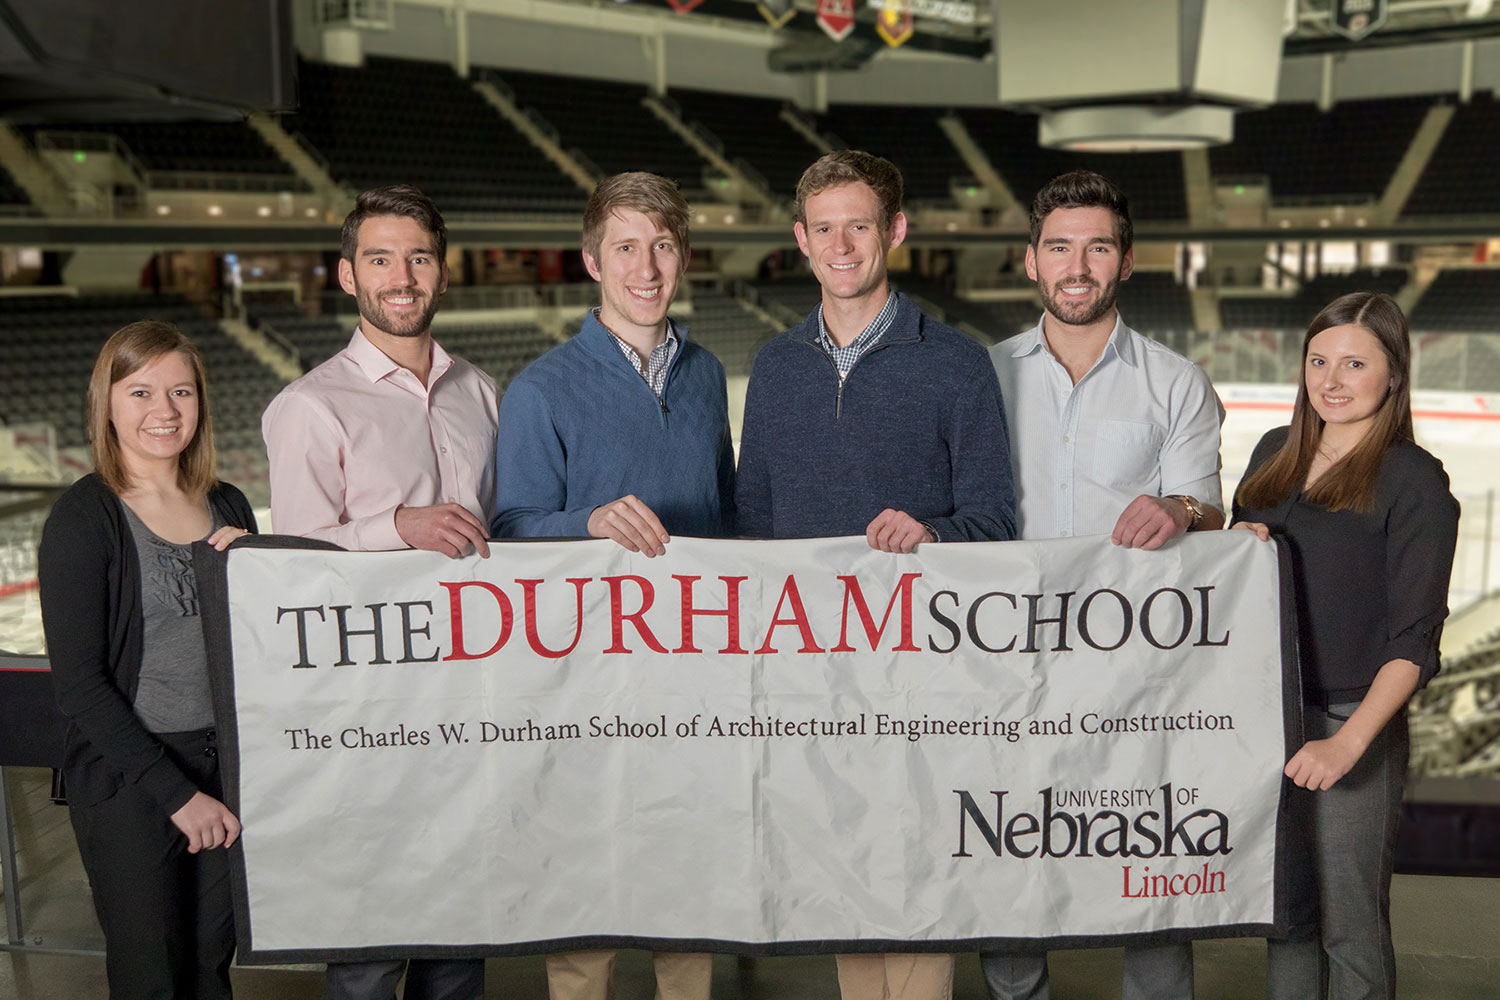 A team of faculty, alumni, and current students from The Durham School, with support from industry volunteers, was awarded the grand prize in the 2016 NCEES Engineering Award competition. One team of the students, pictured above, consisted of (from left) Brianna Brass, Adam Mackenzie, Jacob Clatanoff, Jacob Pulfer, Ben Mackenzie and Katie Gilg.